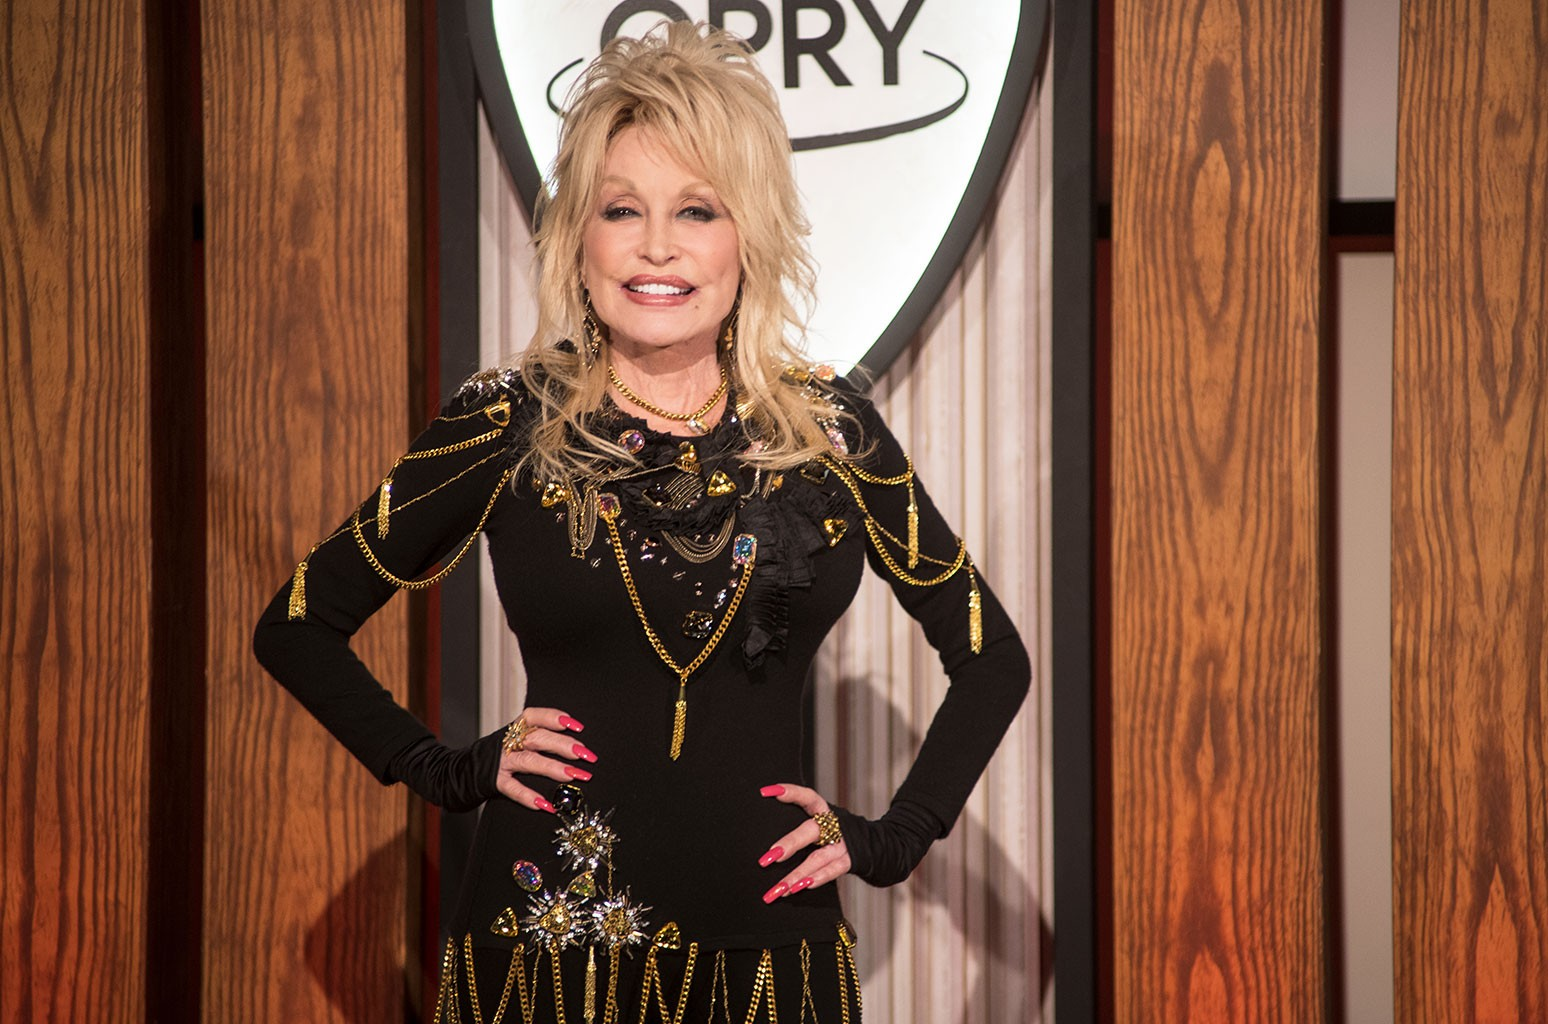 Dolly Parton Grand Ole Opry